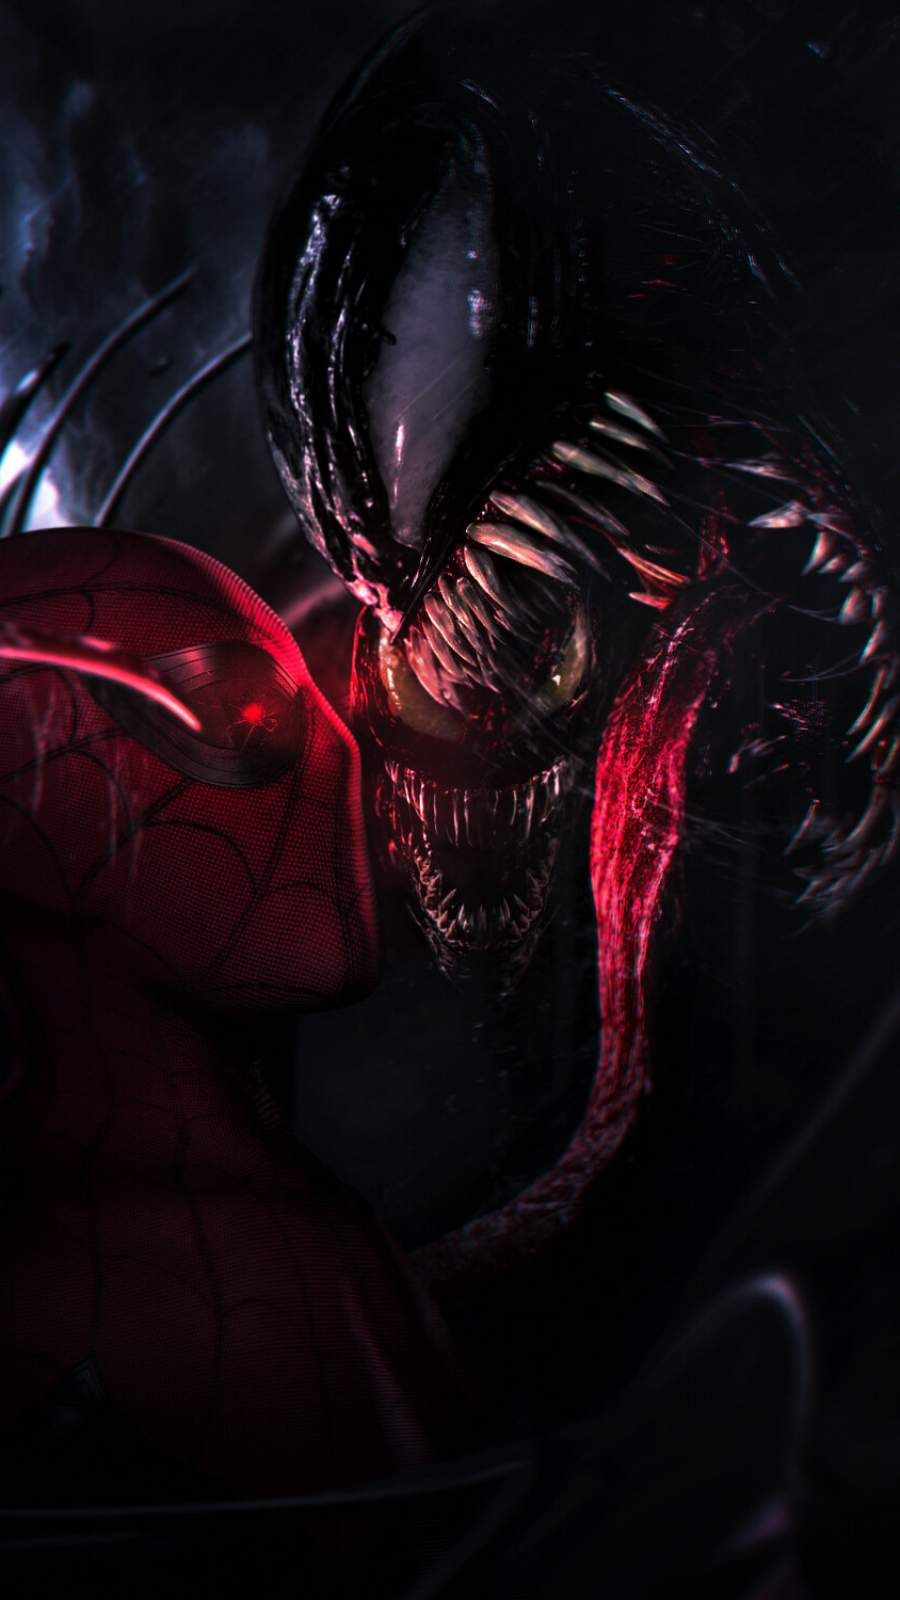 Spidey Vs Venom IPhone Wallpaper Cool backgrounds for